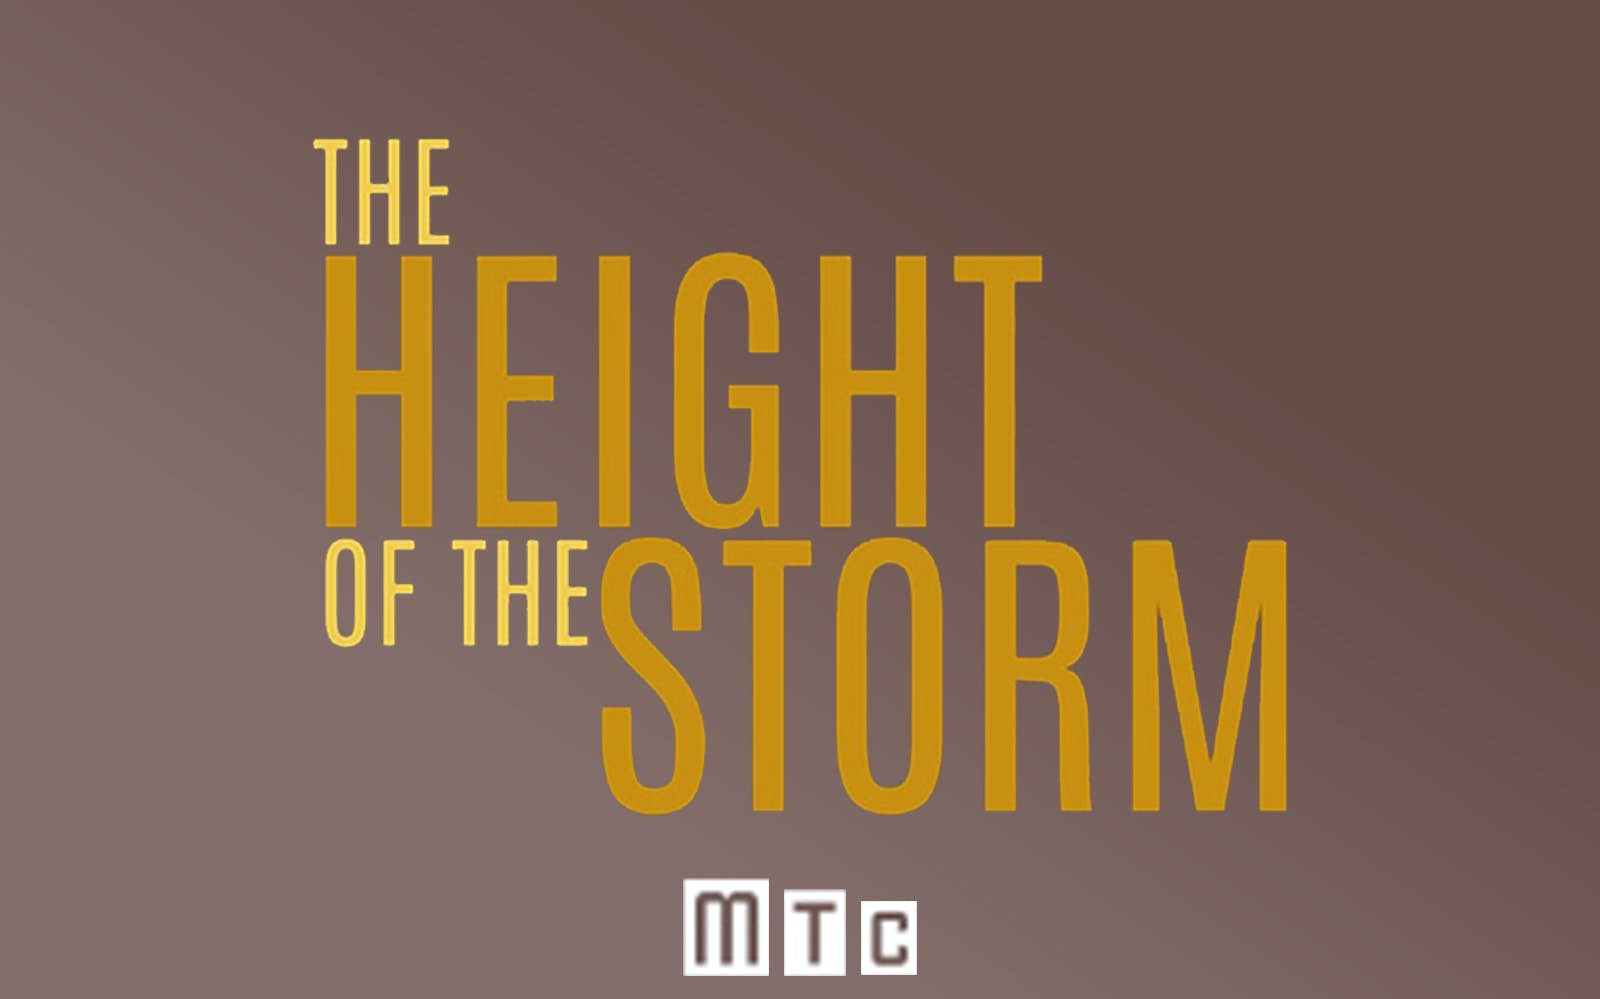 The Height of the Storm on Broadway